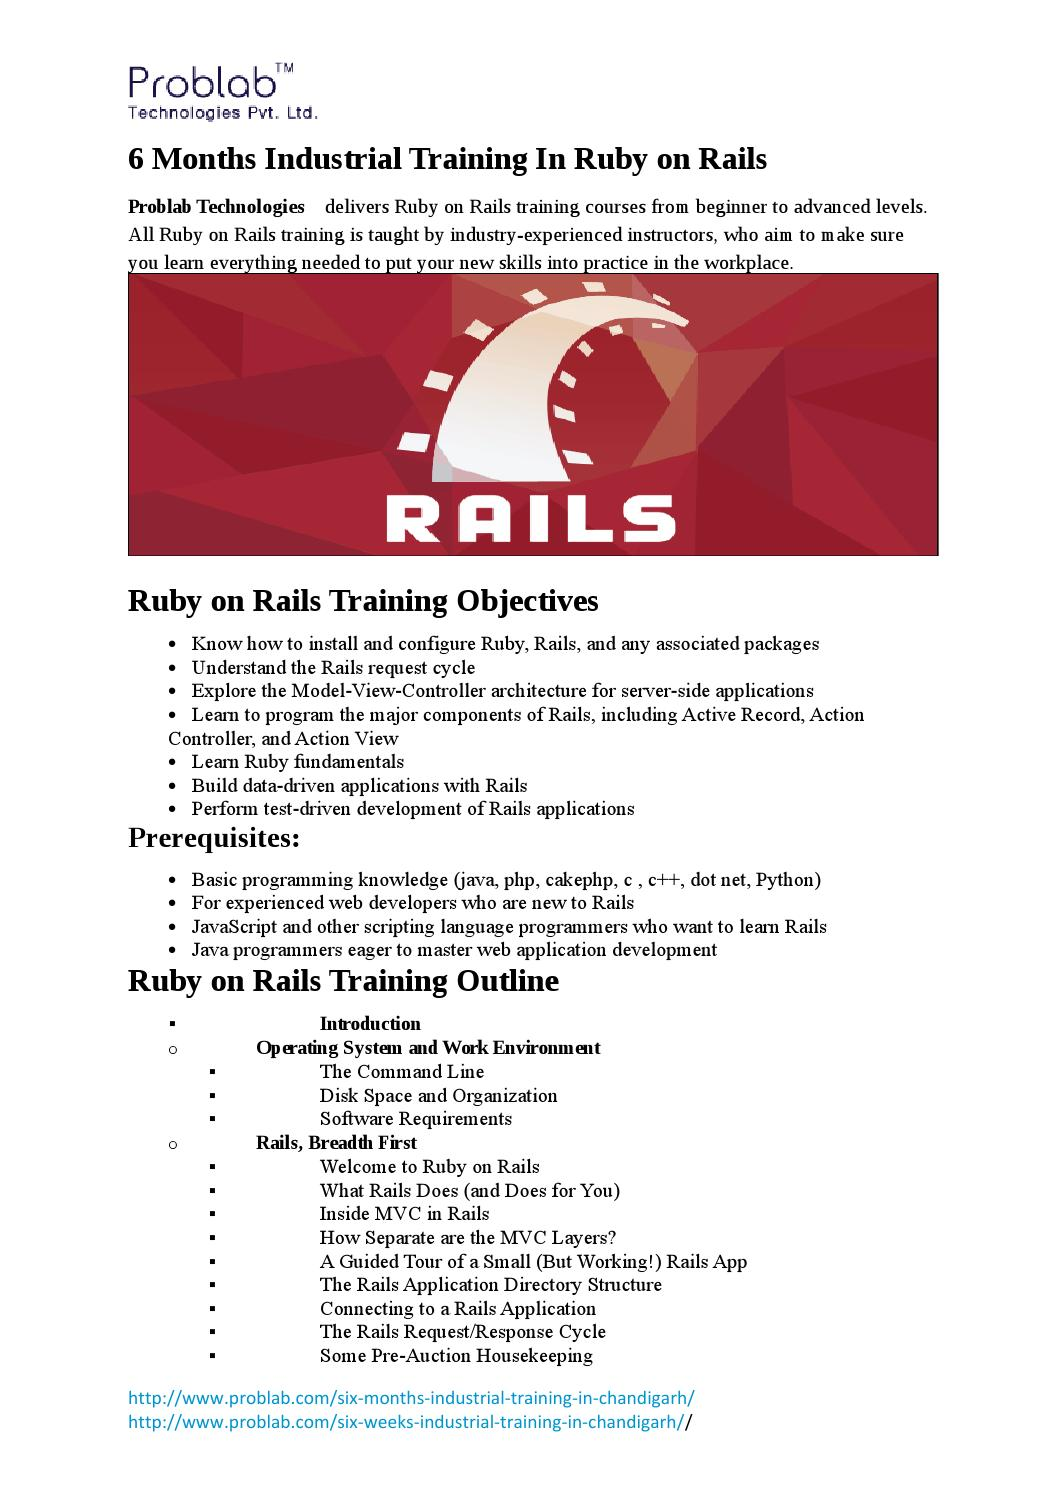 6 months industrial training in ruby on rails by Problab